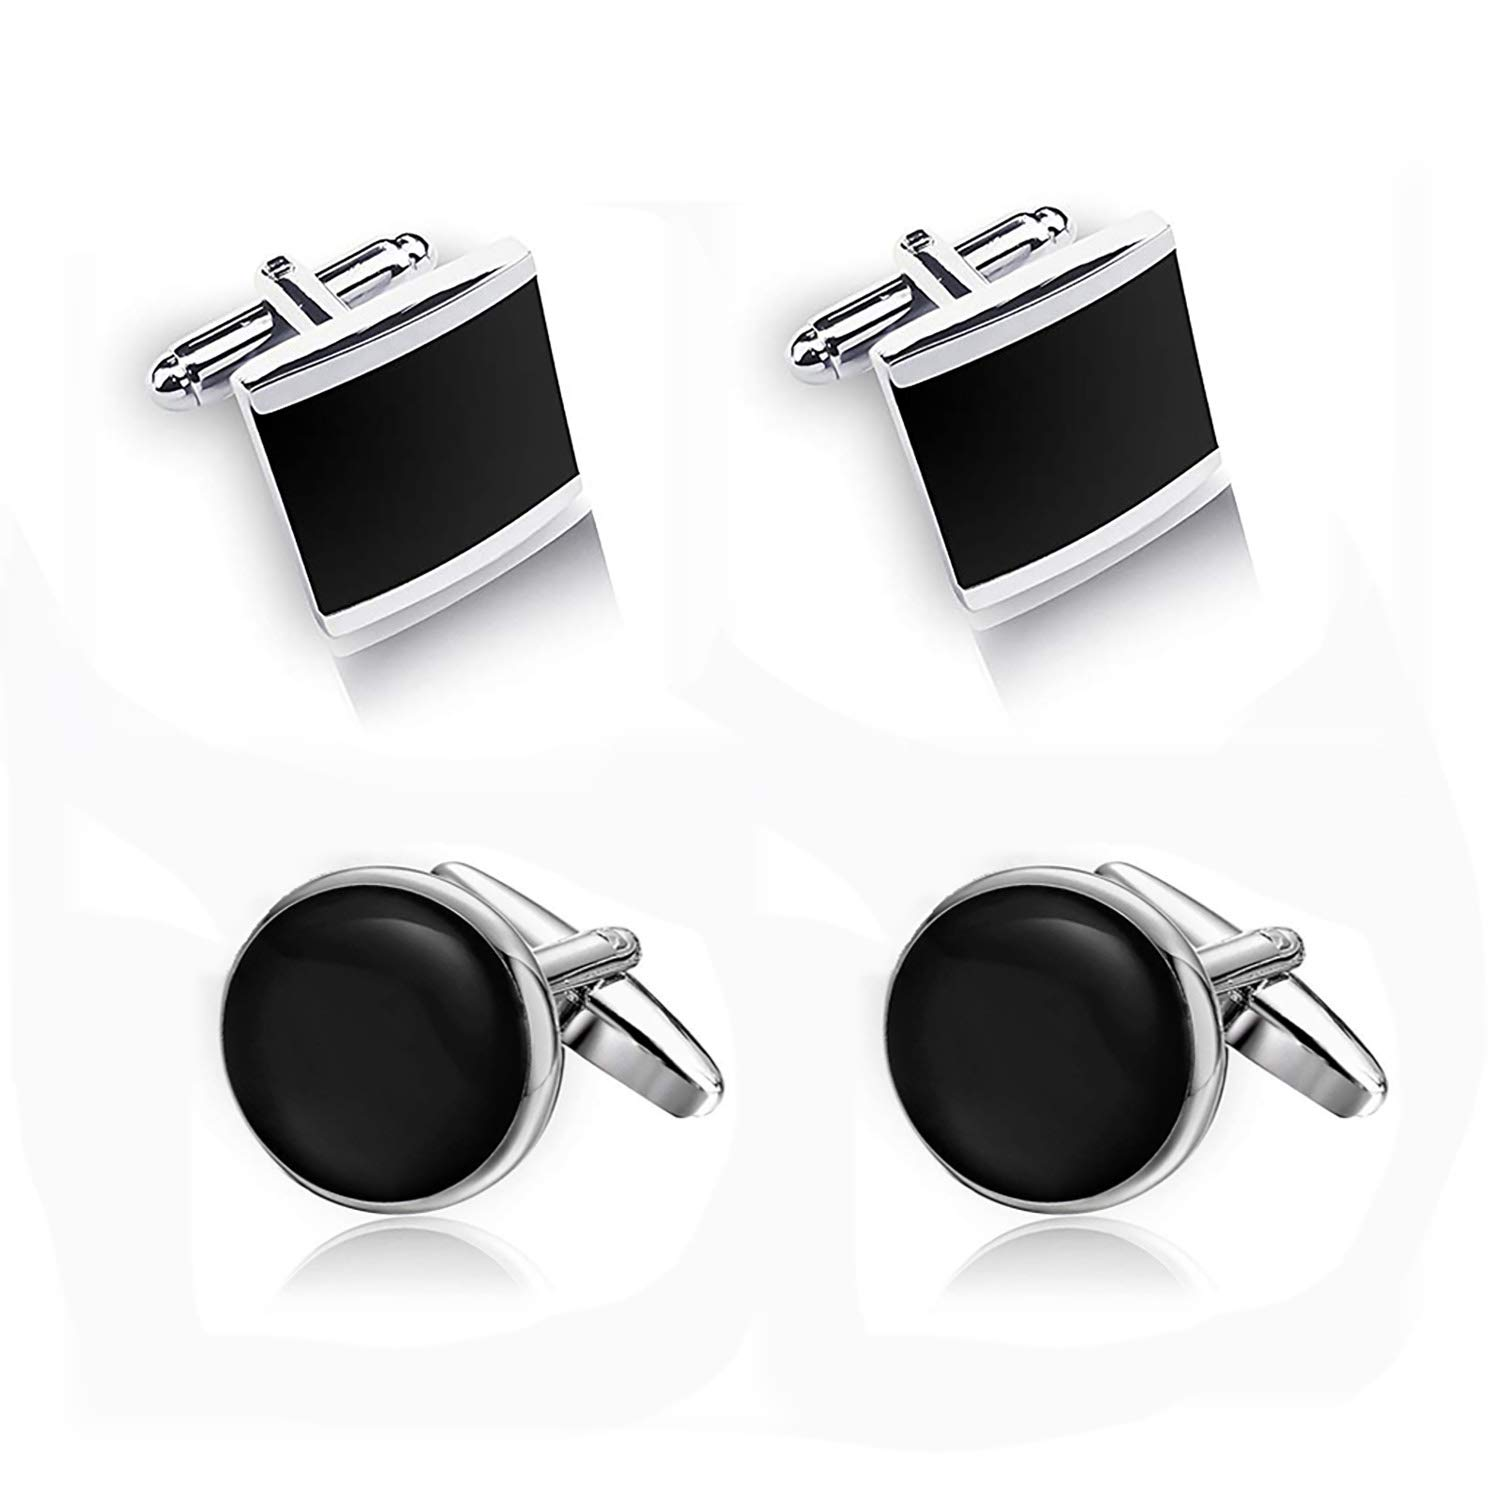 Luxury Tie Bar Clip Cufflinks Sets Gifts for Mens Boys-Timeless Design-Classic and Fashionable Necktie Bar Clips Cufflink Set Wedding Business (Gold, Silver) Necktie Bar Clips Sets Fashion Mens Boys Wedding Business Gifts( Silver MAX